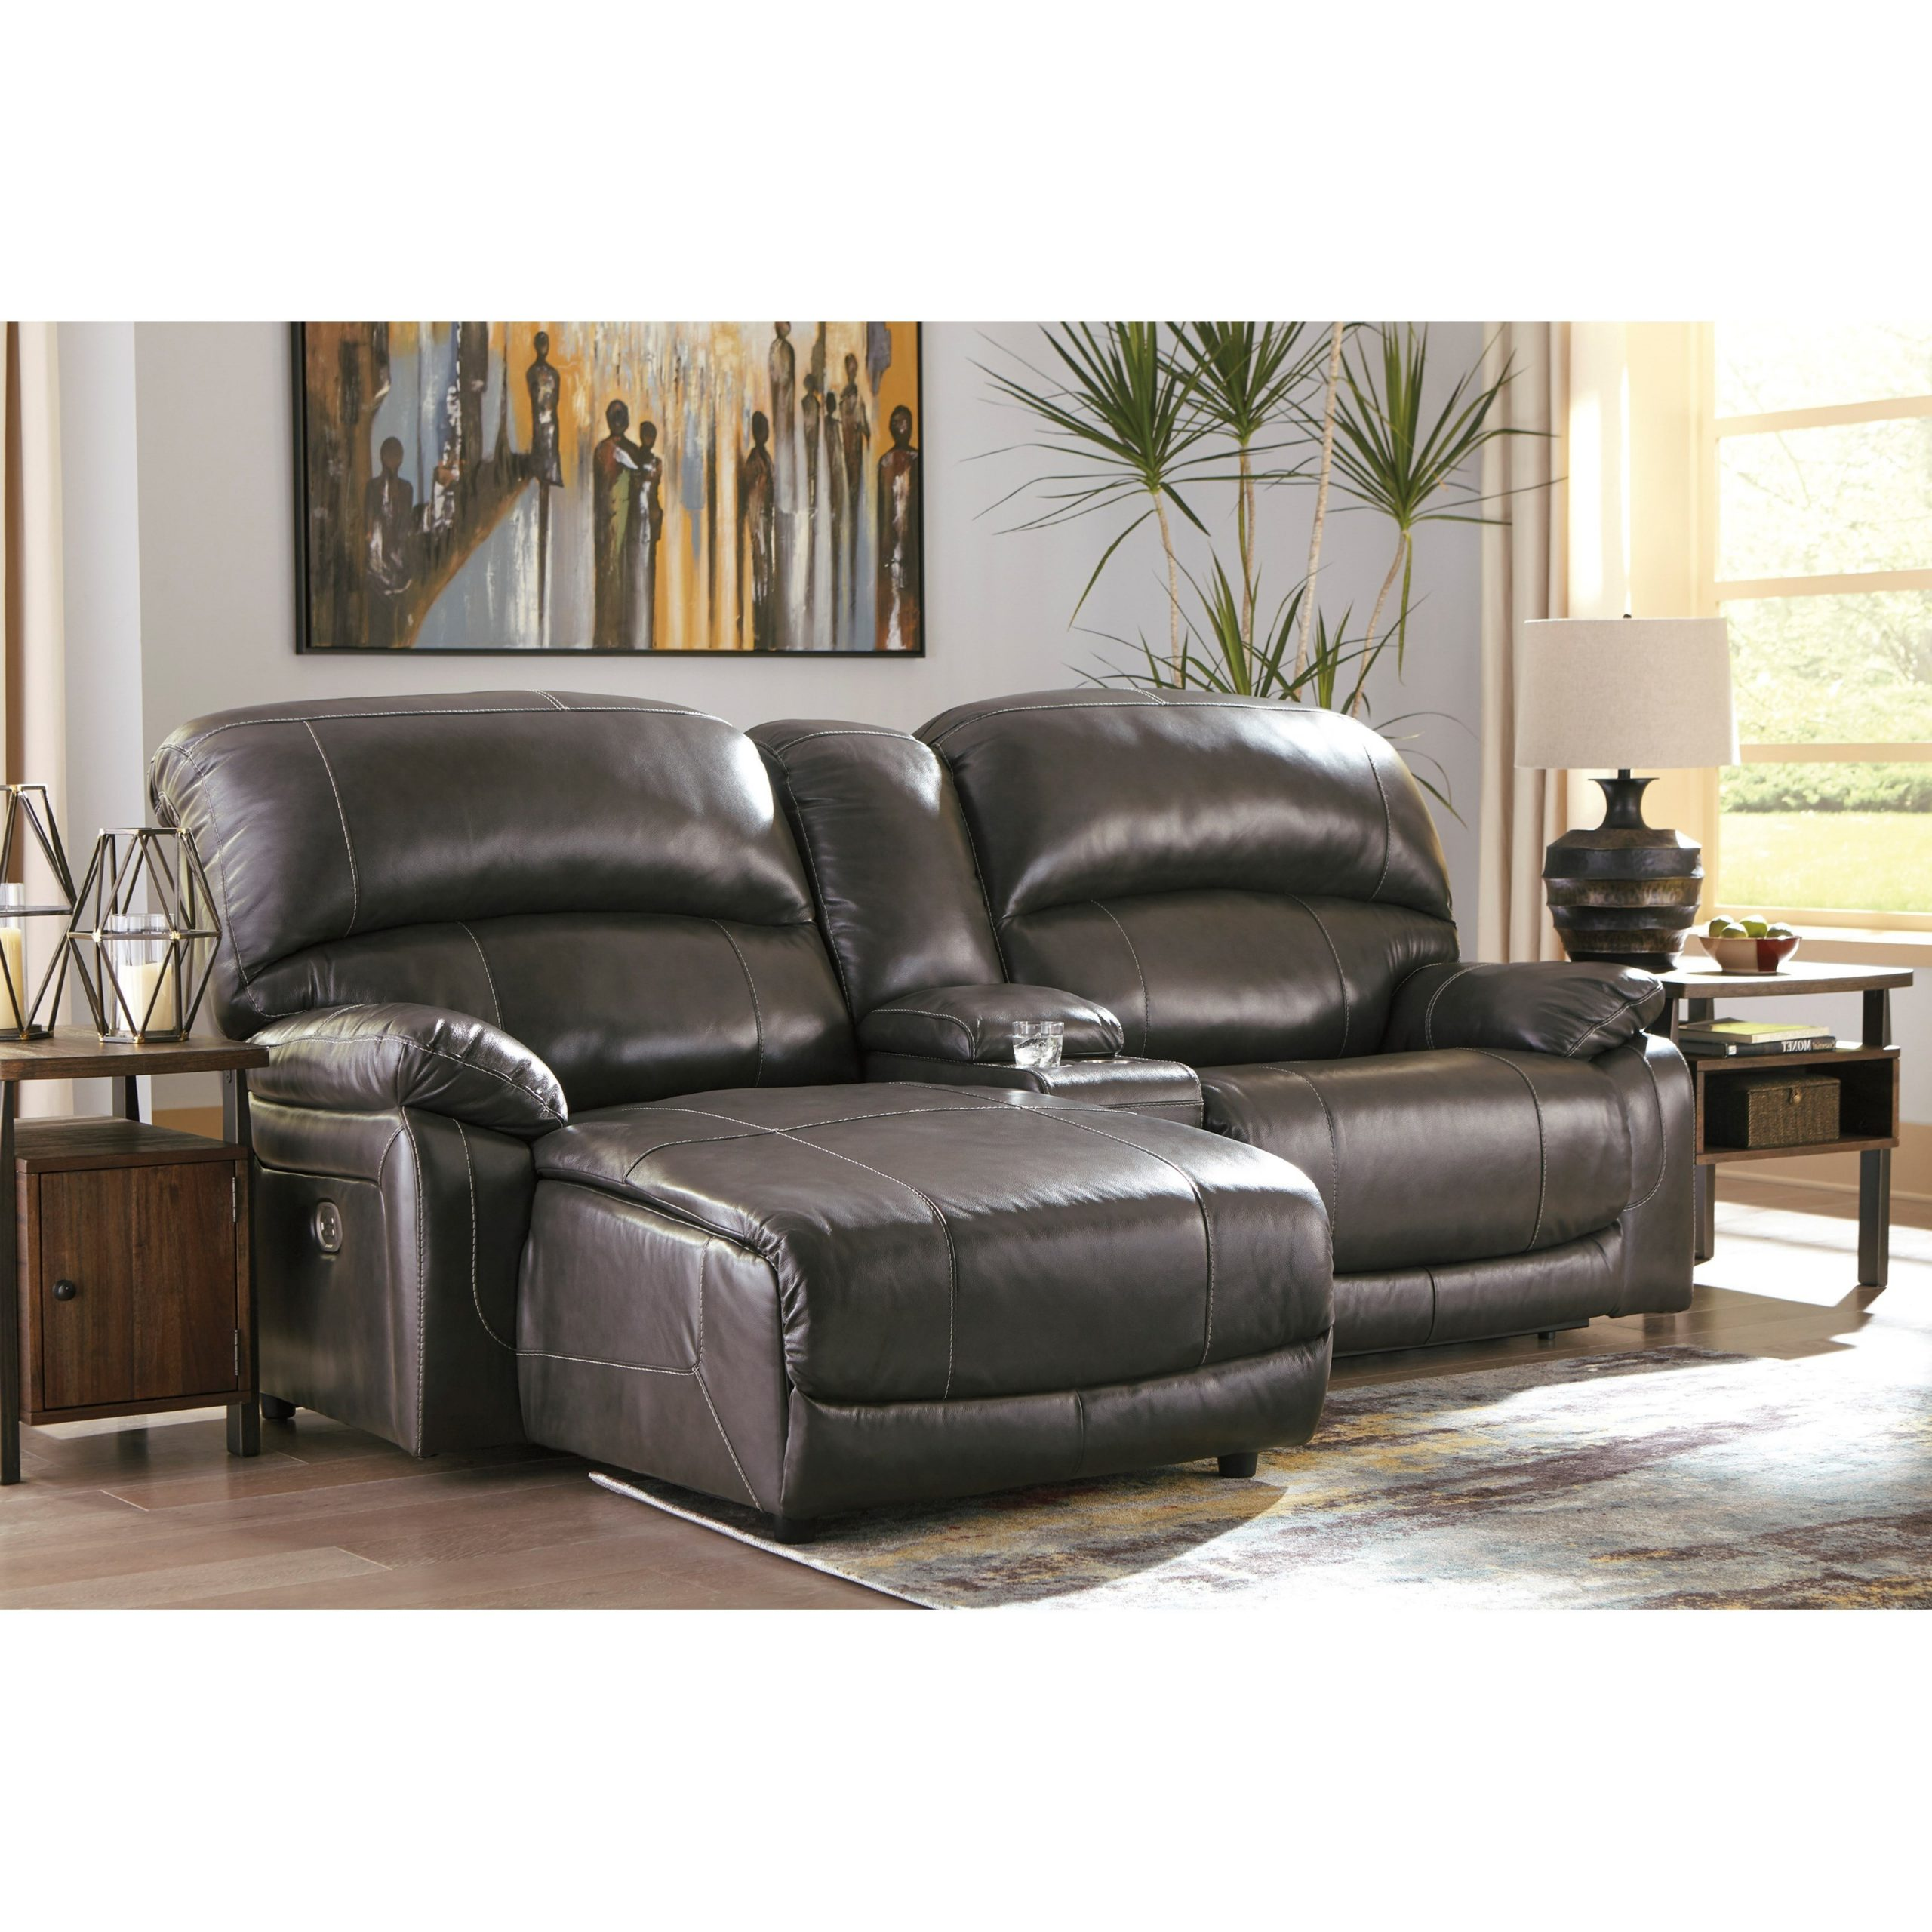 3Pc Miles Leather Sectional Sofas With Chaise Inside Preferred Signature Designashley Hallstrung Leather Match  (View 25 of 25)